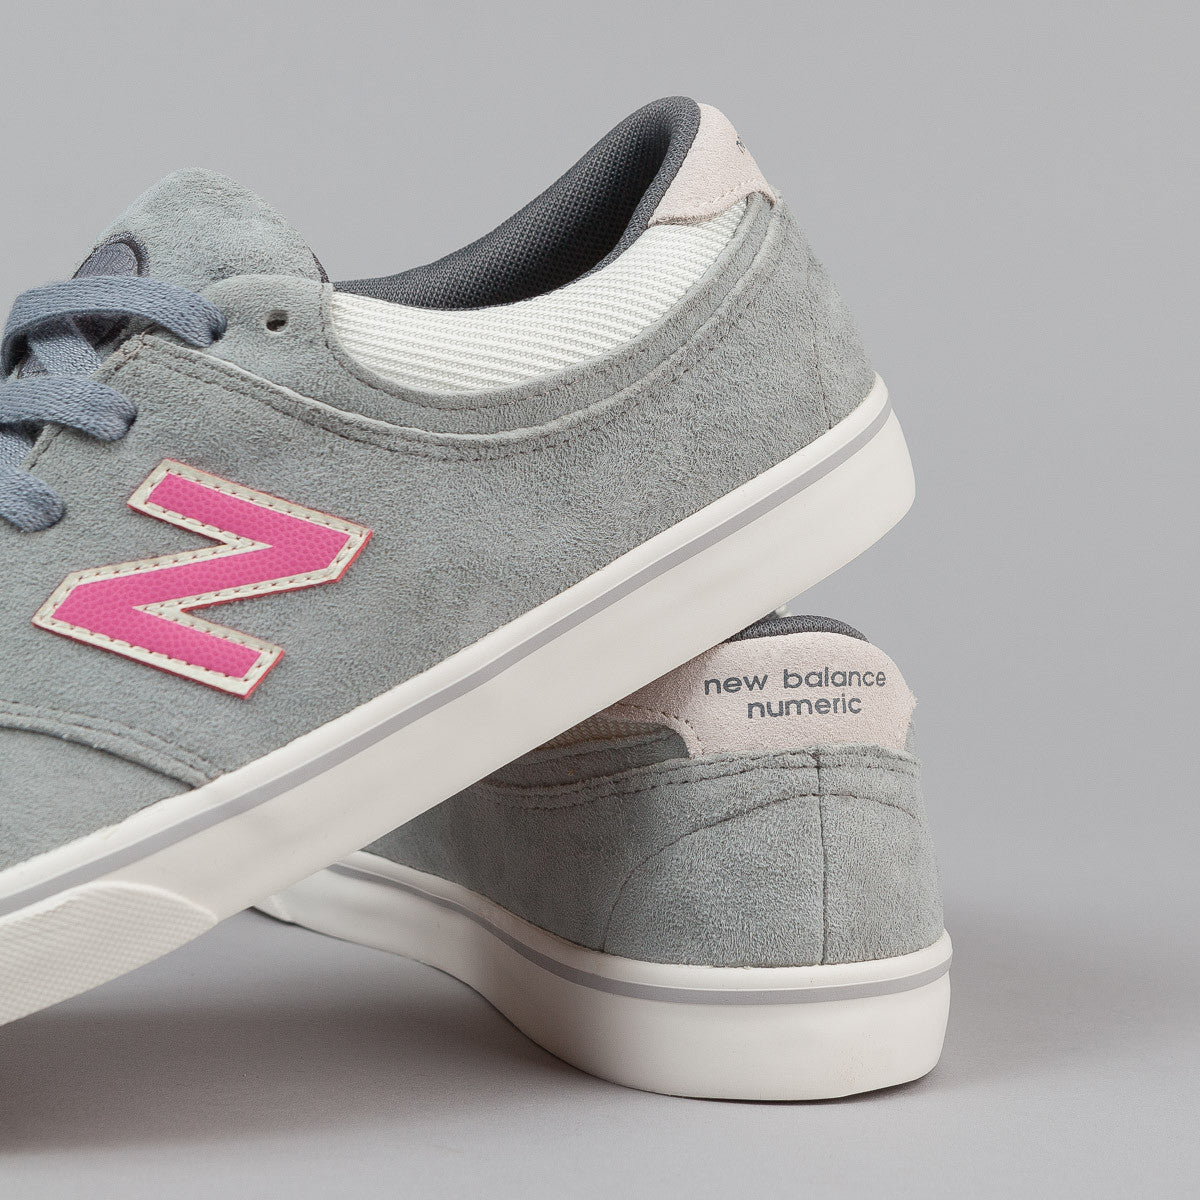 New Balance Numeric Quincy 254 Shoes - Grey / Pink